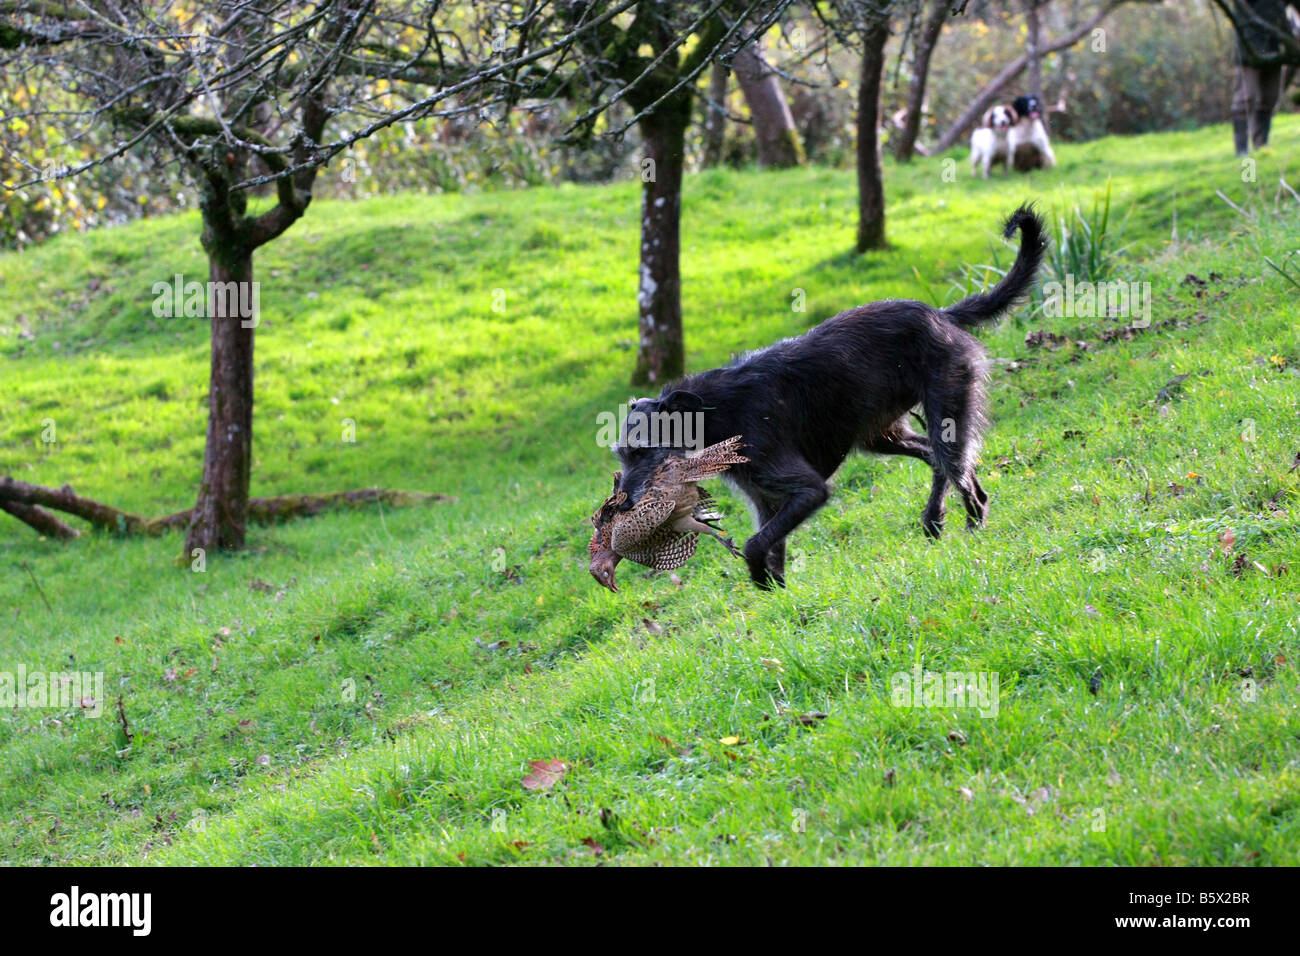 Deer hound lurcher cross working dog retrieves shot dead pheasant from organised game bird shoot carrying it in - Stock Image